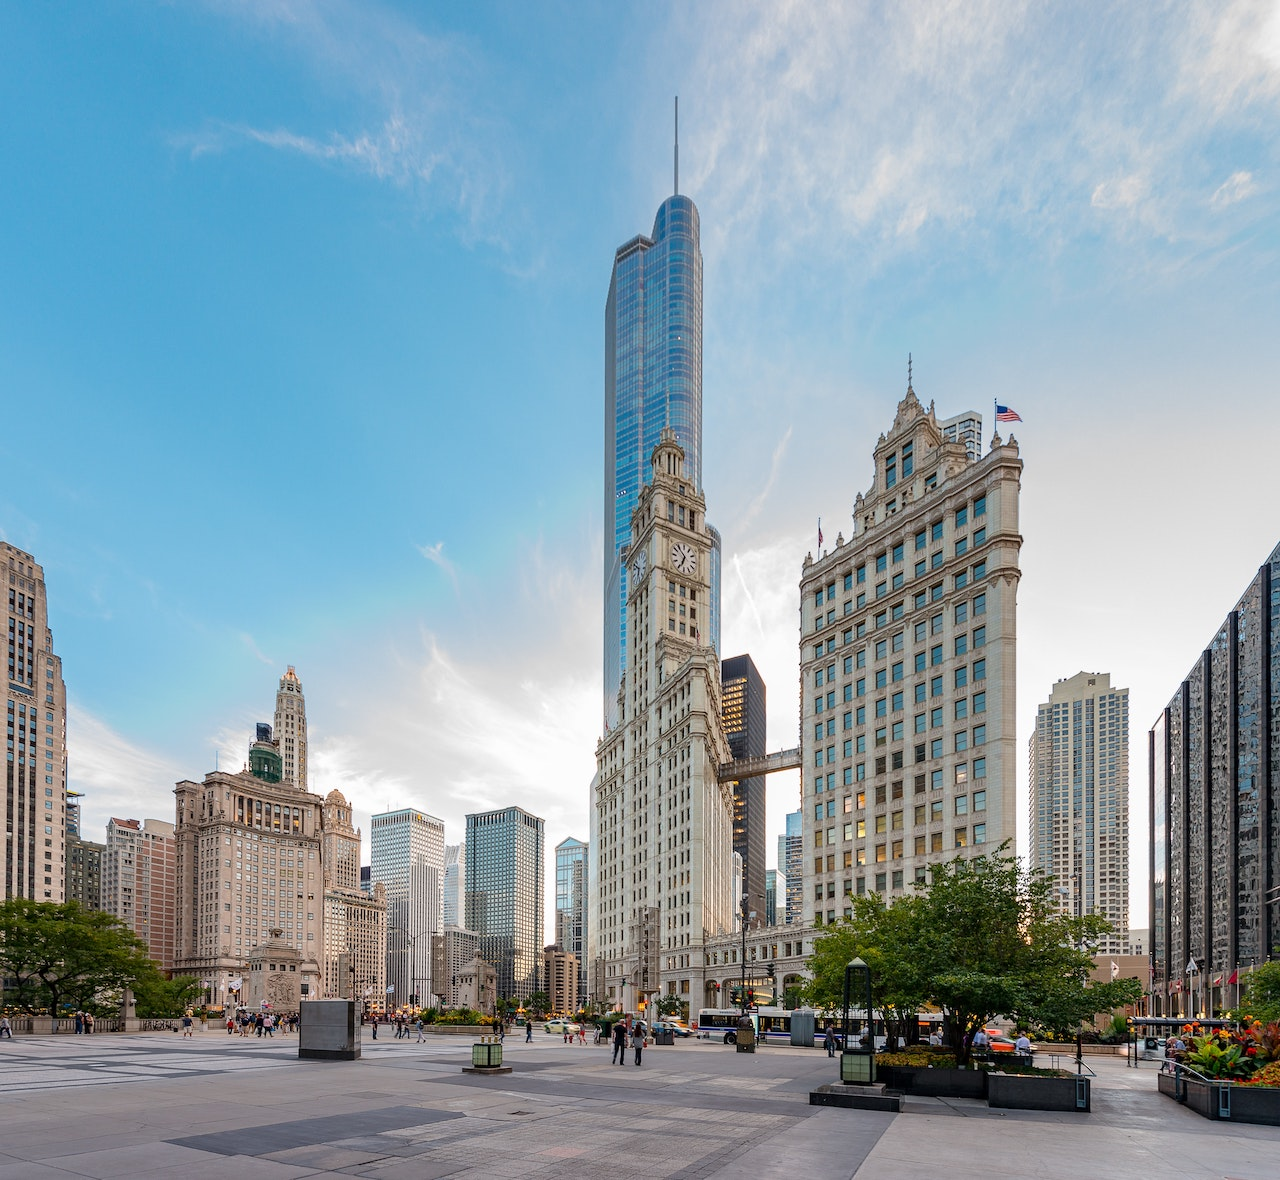 Chicago Commercial Real Estate News 2019 - Cawley Chicago Real Estate